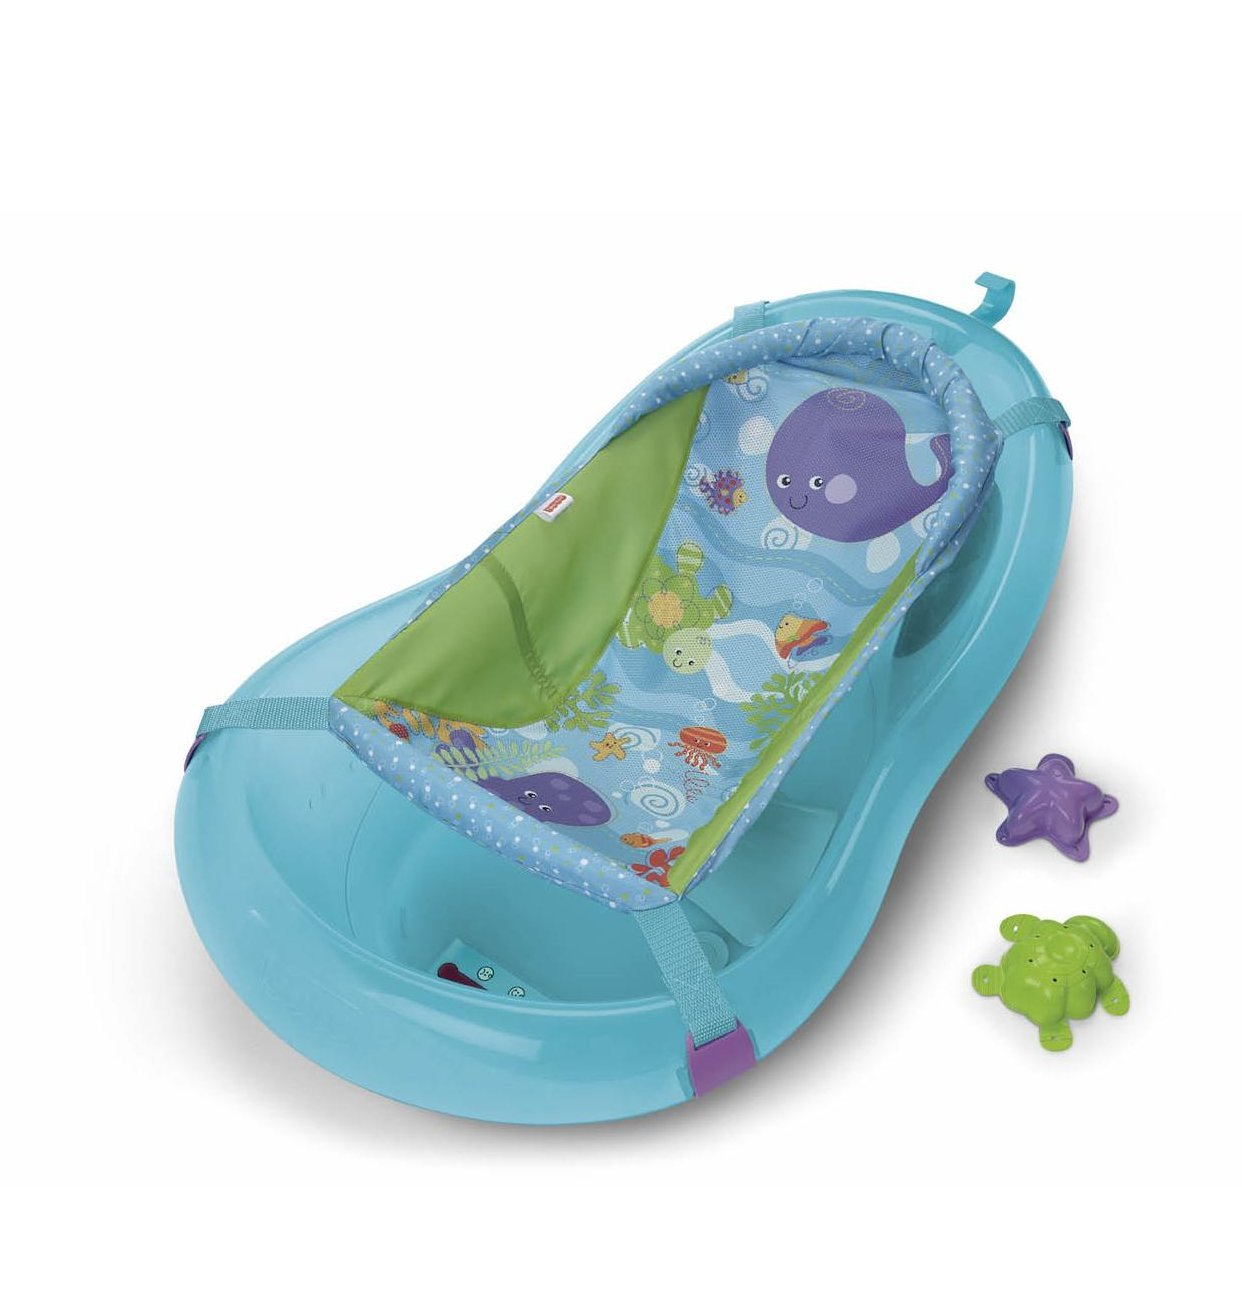 best bathtub seats for babies for sale online top kids gear